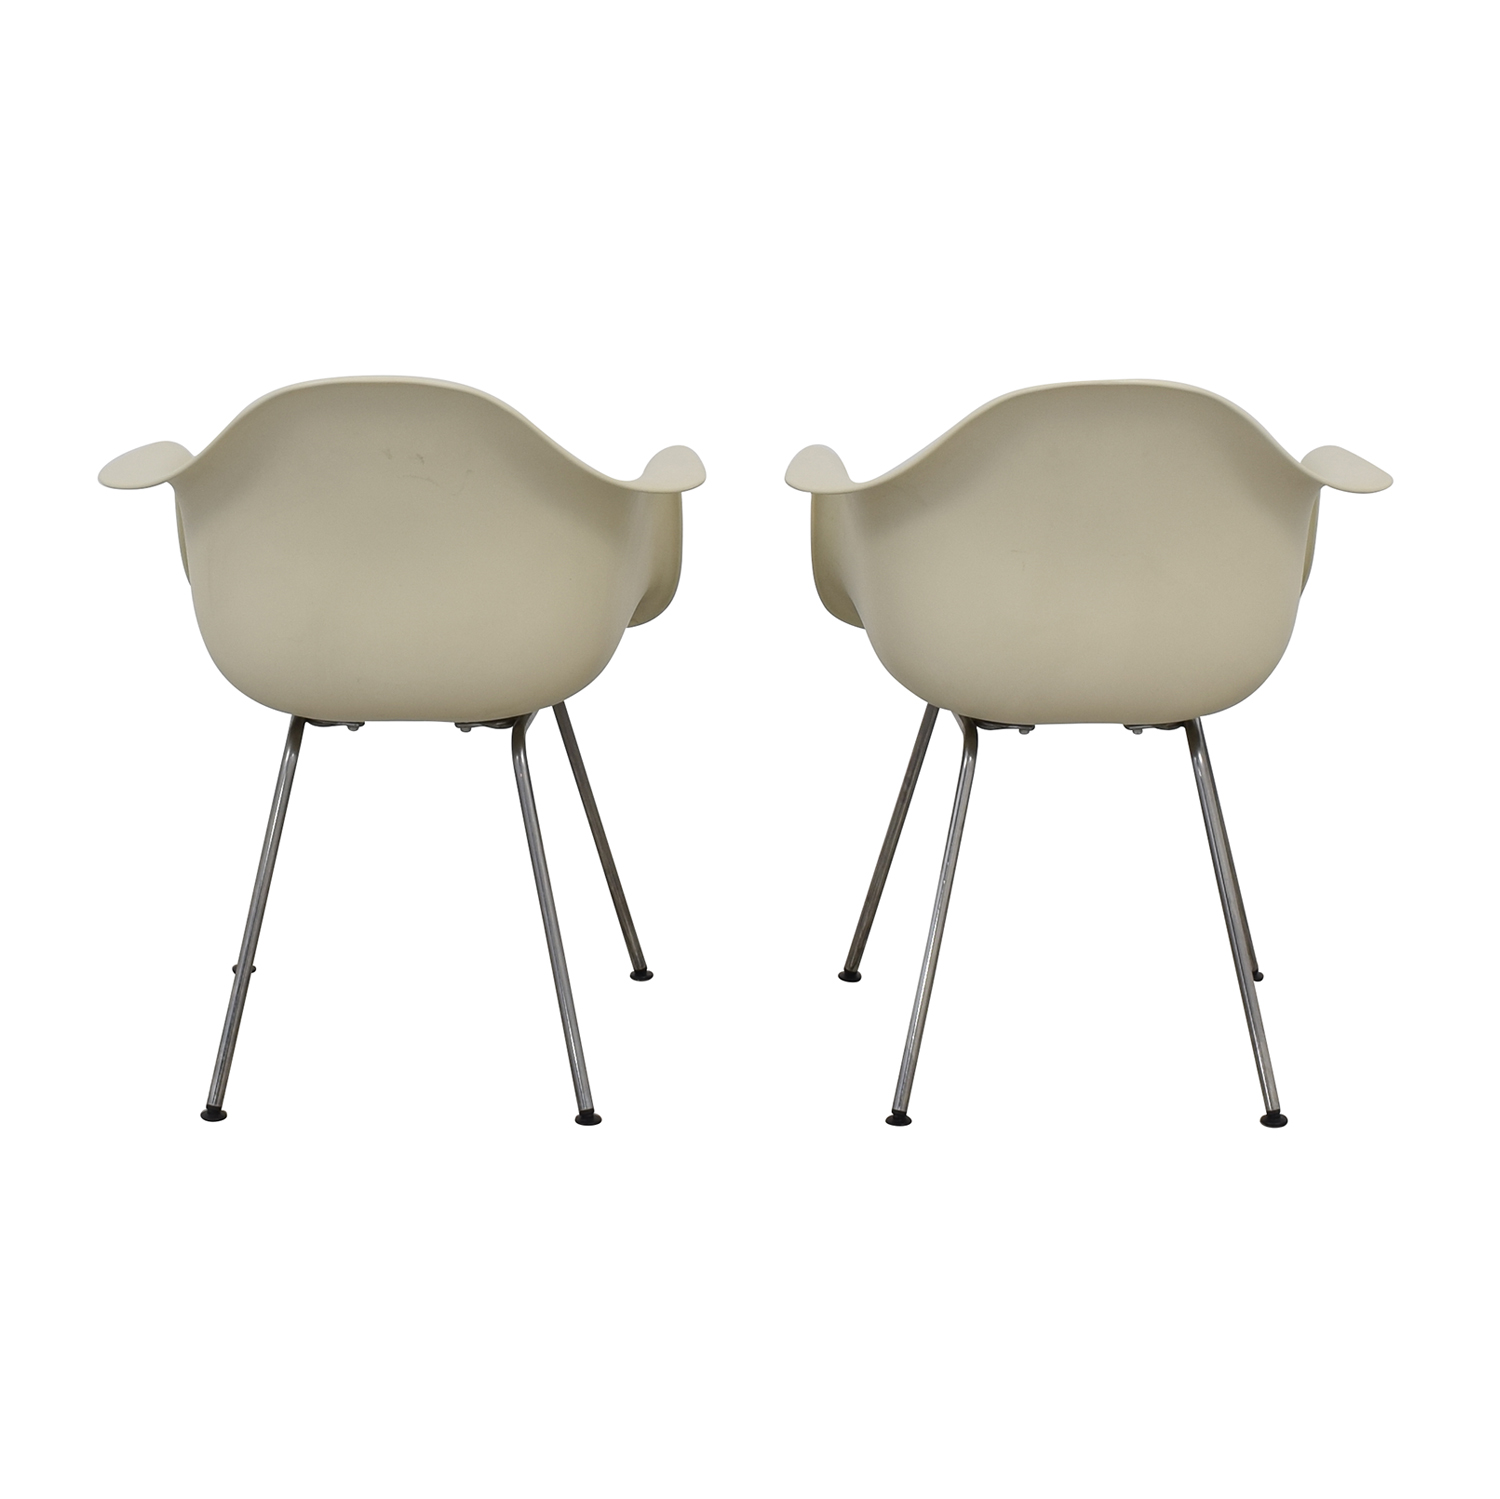 Design Within Reach Design Within Reach Eames Molded Plastic 4 Leg Armchairs Chairs